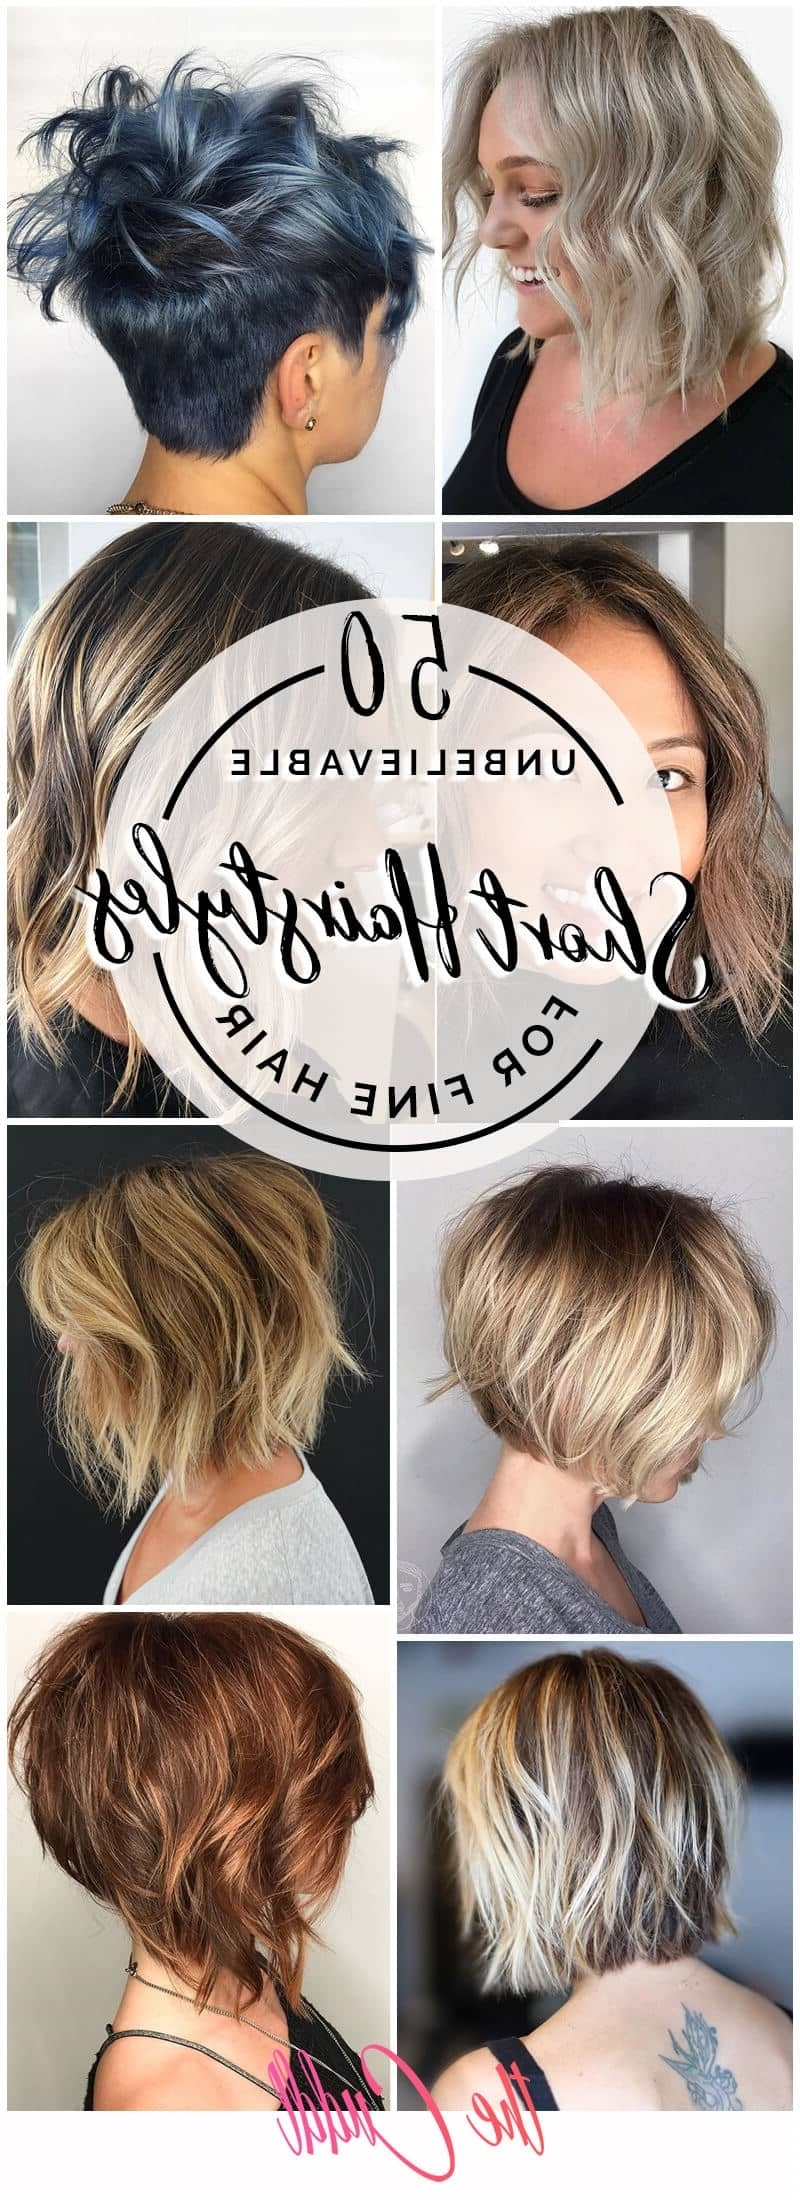 50 Quick And Fresh Short Hairstyles For Fine Hair In 2020 Medium Blonde Hairstyles For Fine Hair